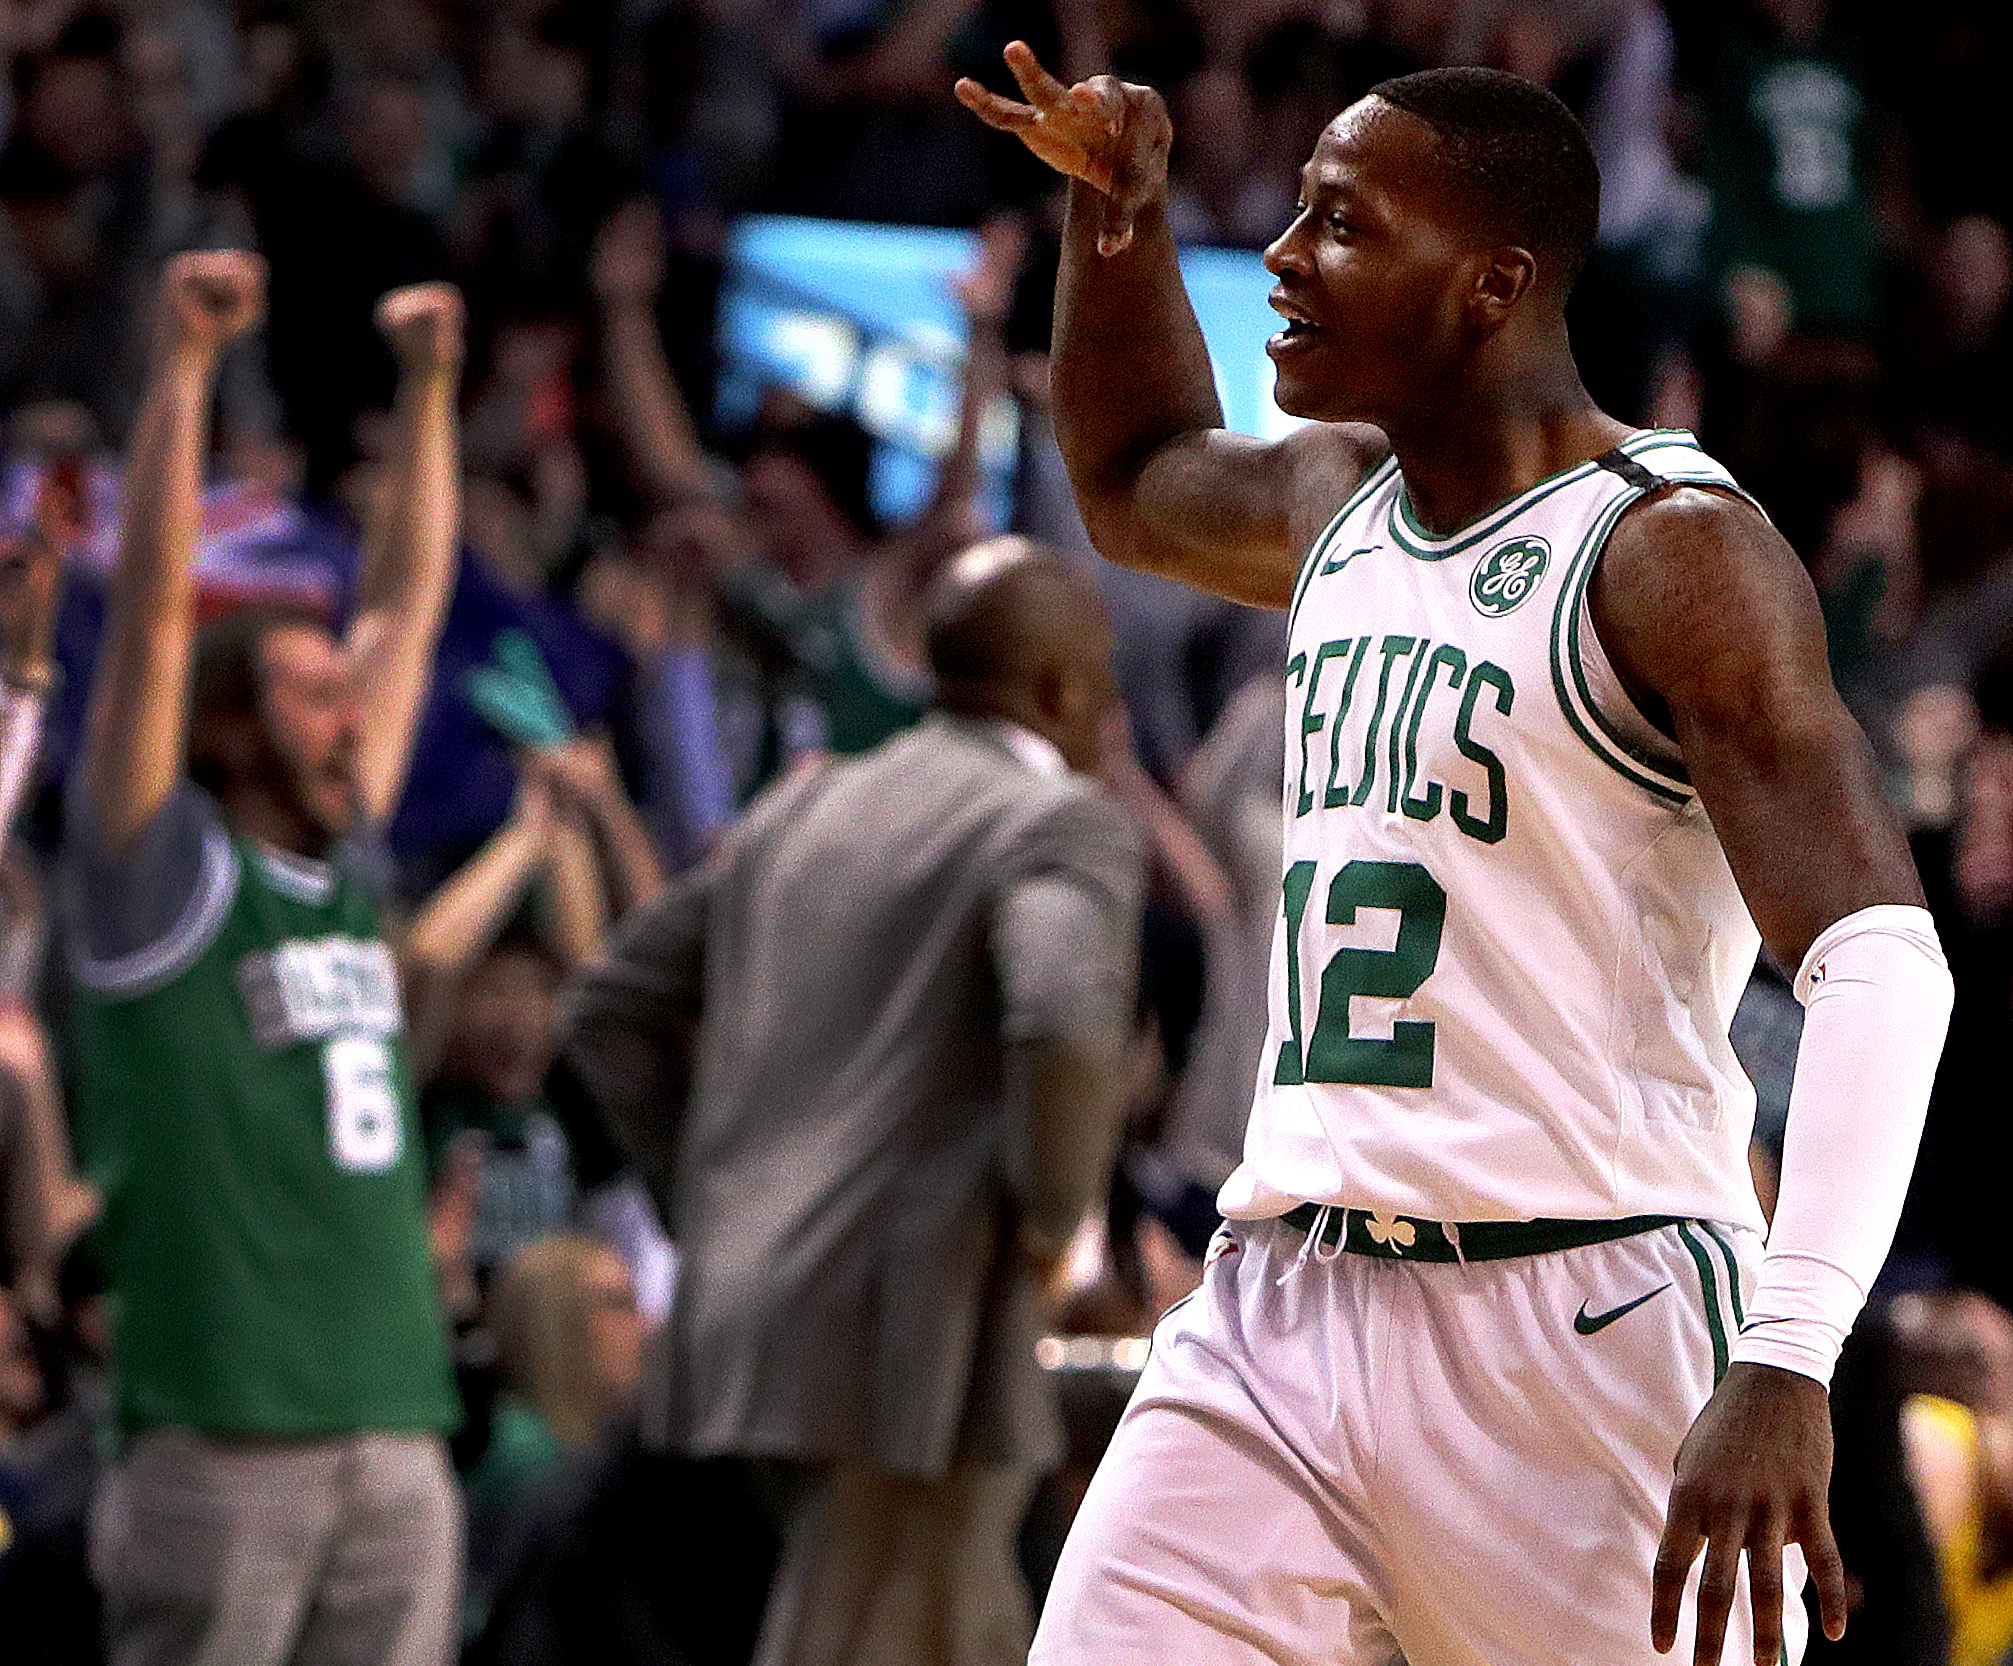 reputable site 45c92 a70af Here's how 'Scary Terry' Rozier came to be a thing - The ...